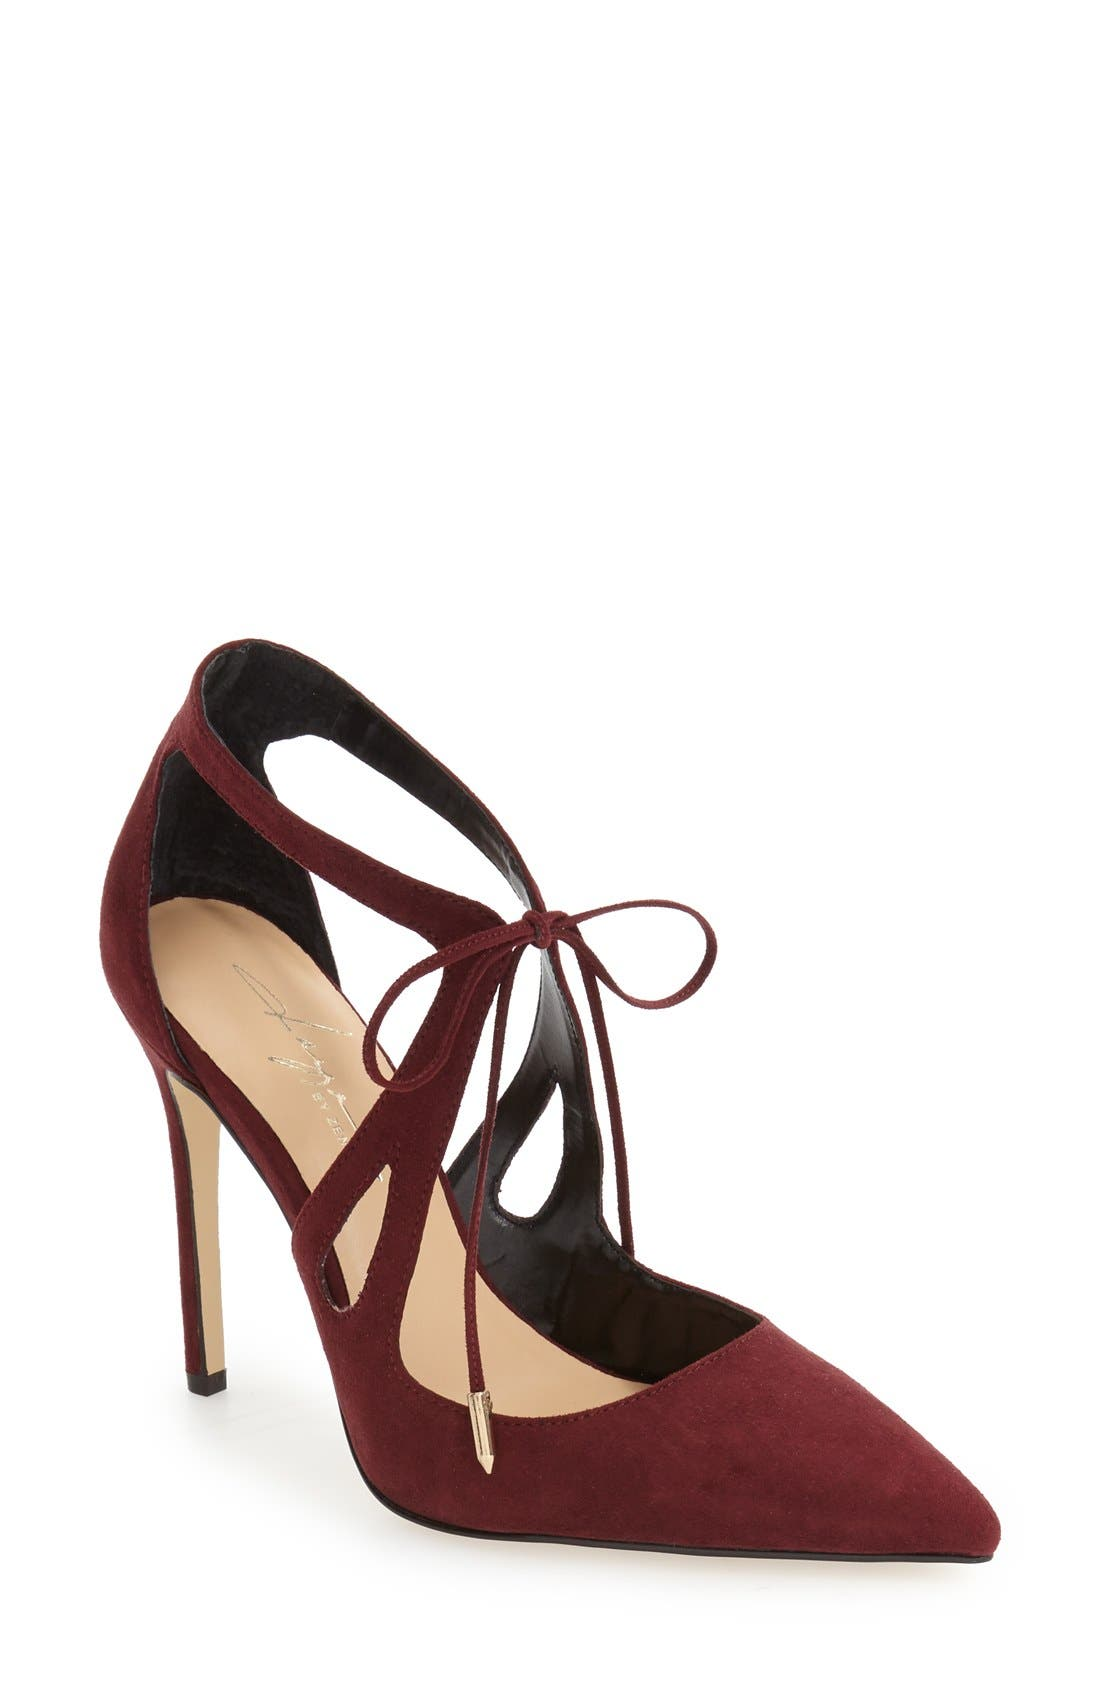 by Zendaya 'Aaron' Pointy Toe Pump,                             Main thumbnail 1, color,                             939